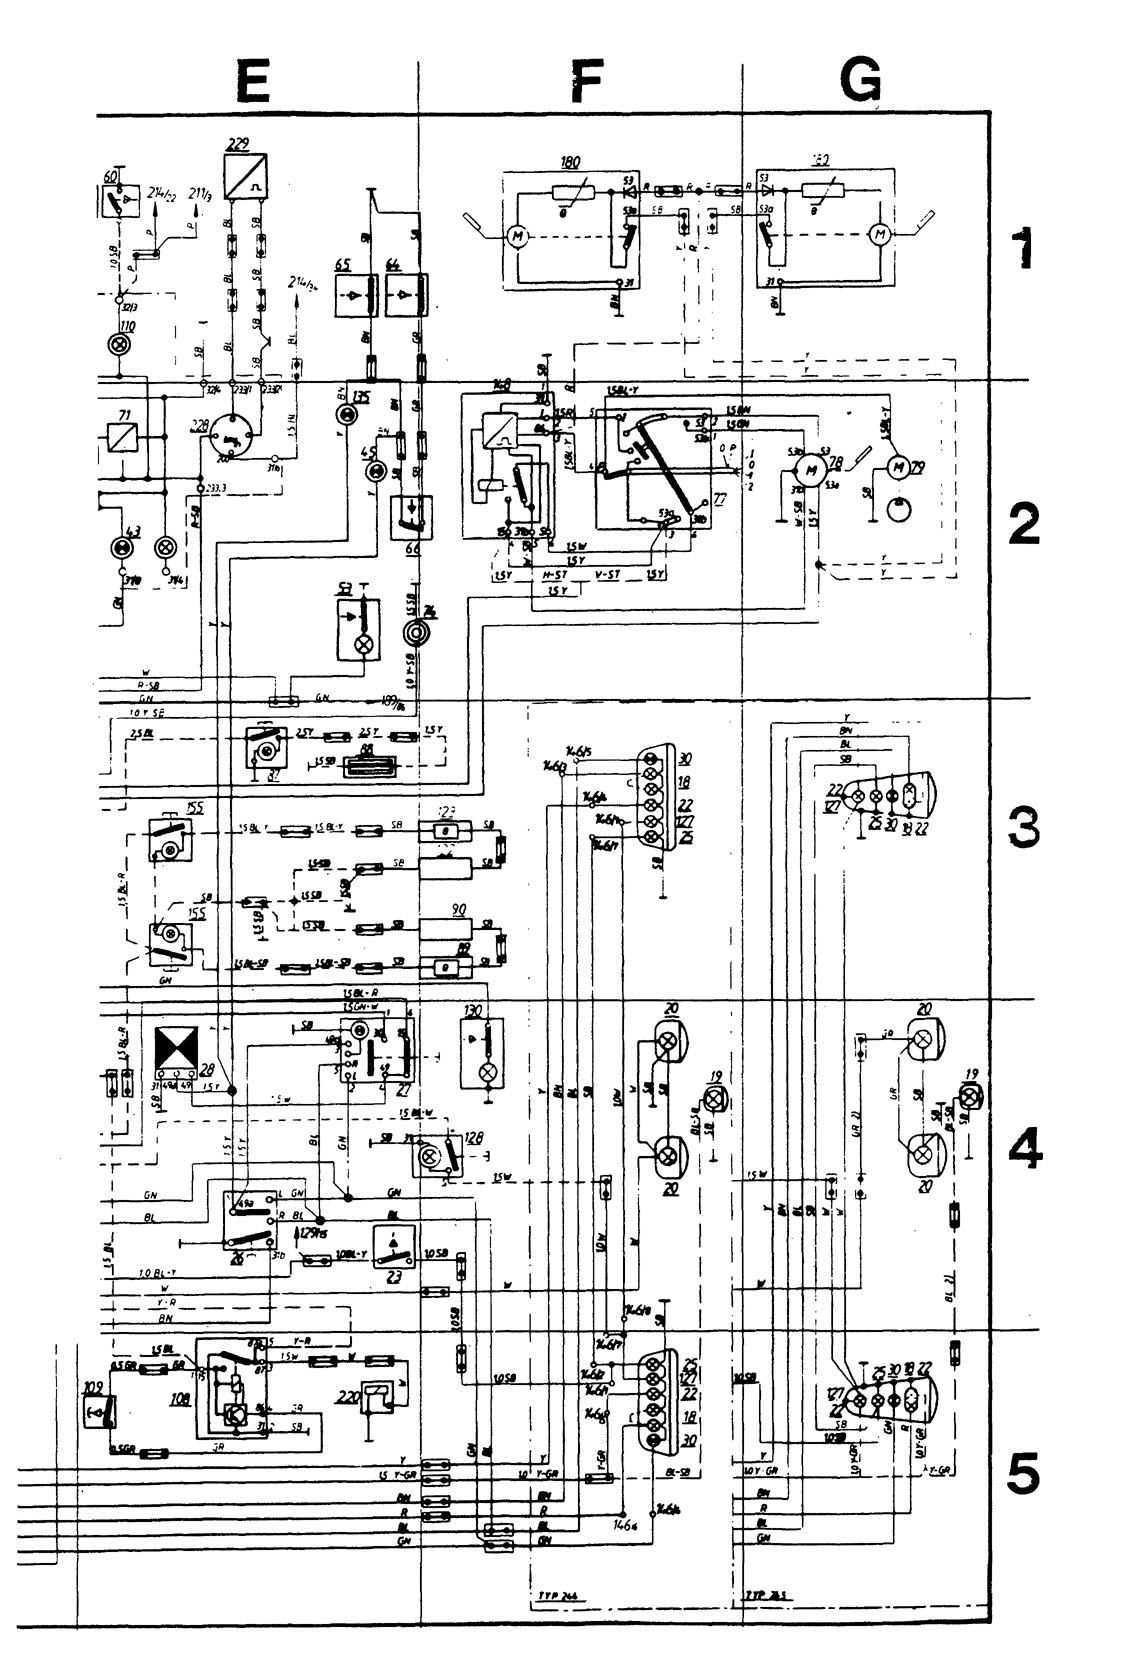 Volvo Wiring Diagram Audio additionally Bluetooth further Mazda Main Engine Fuse Box Diagram likewise Toyota Hilux Service Repair Manual in addition Wwpk. on car audio wiring diagrams